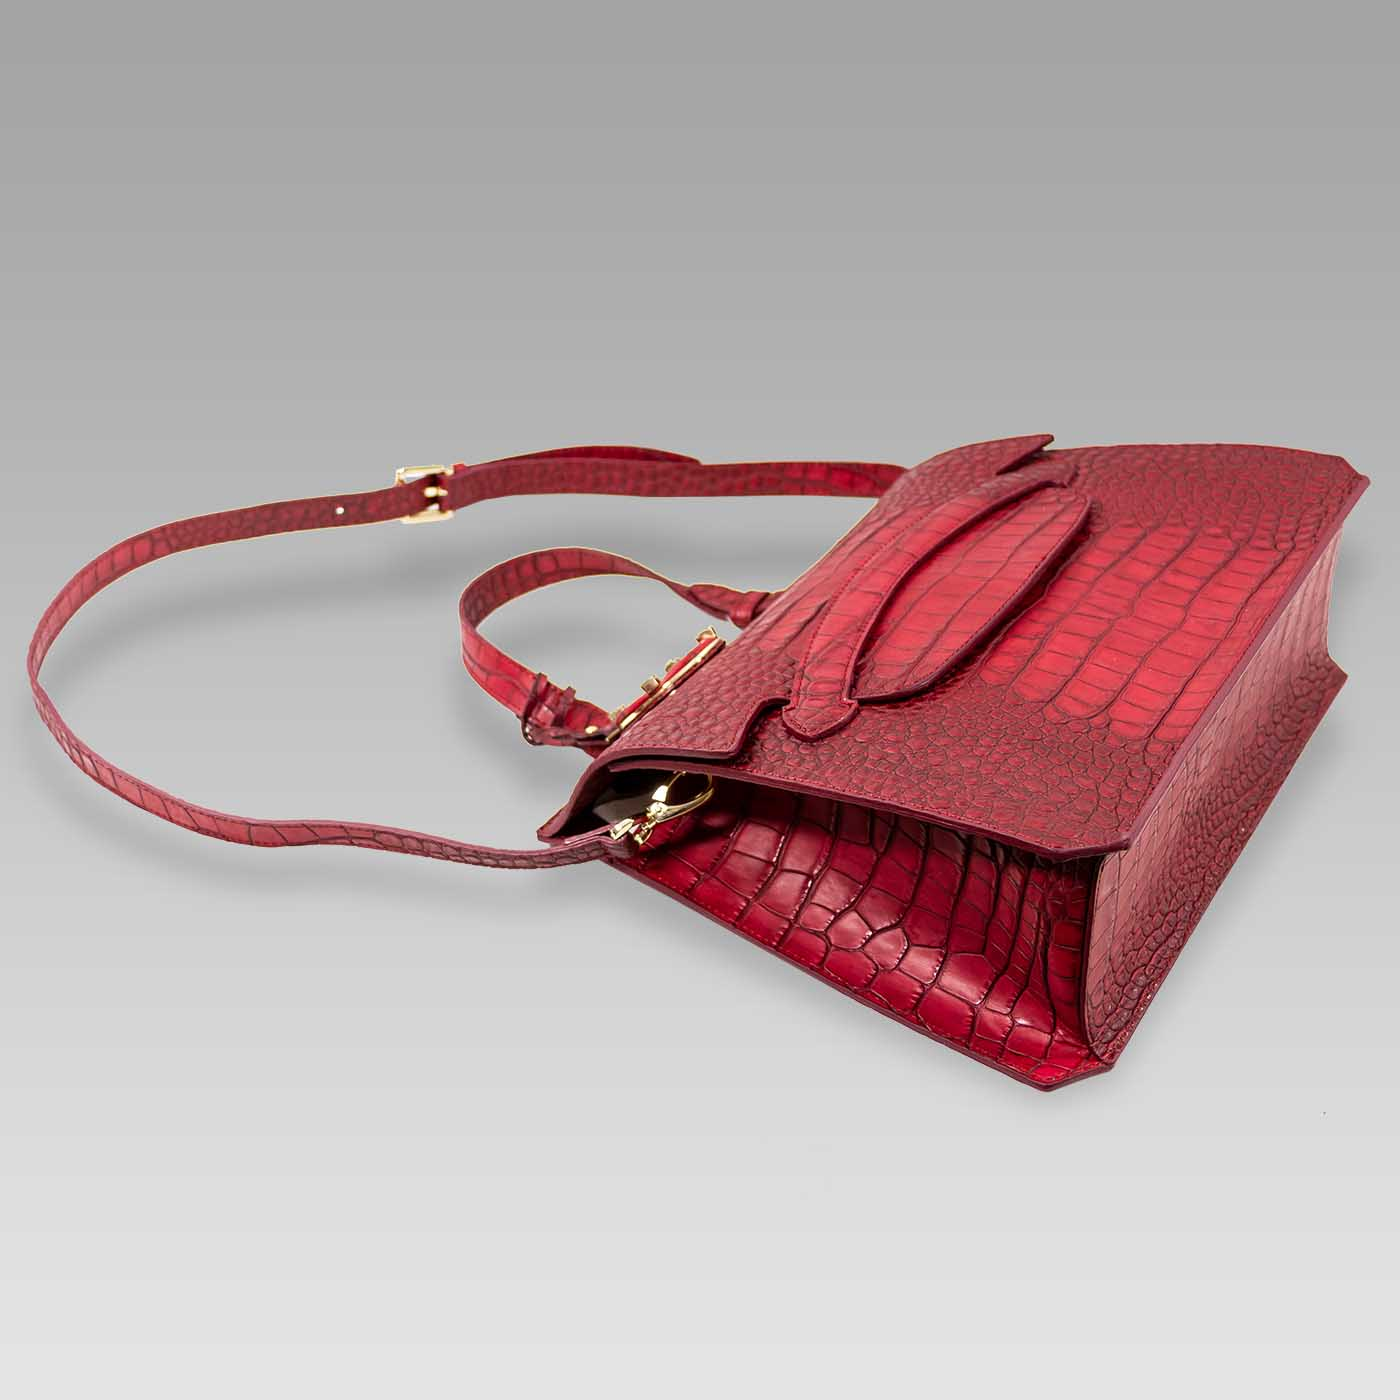 Valentino_Orlandi_Large_Purse_Scarlet_Red_Croc_Embossed_Leather_Tote_01VO42161CLRD_02.jpg